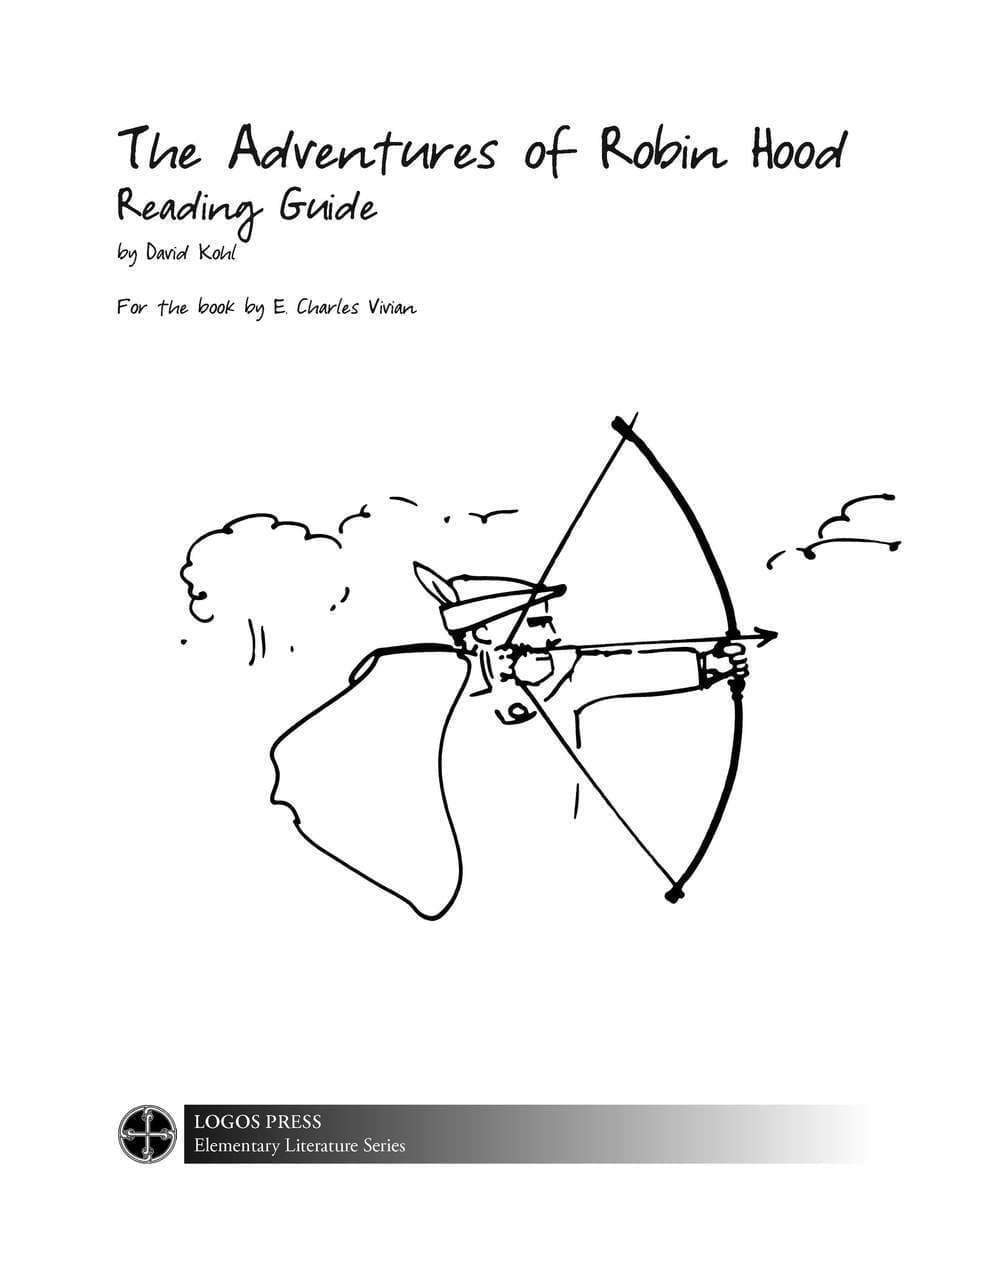 The Adventures of Robin Hood (by E. Vivian Charles) – Reading Guide (Download)